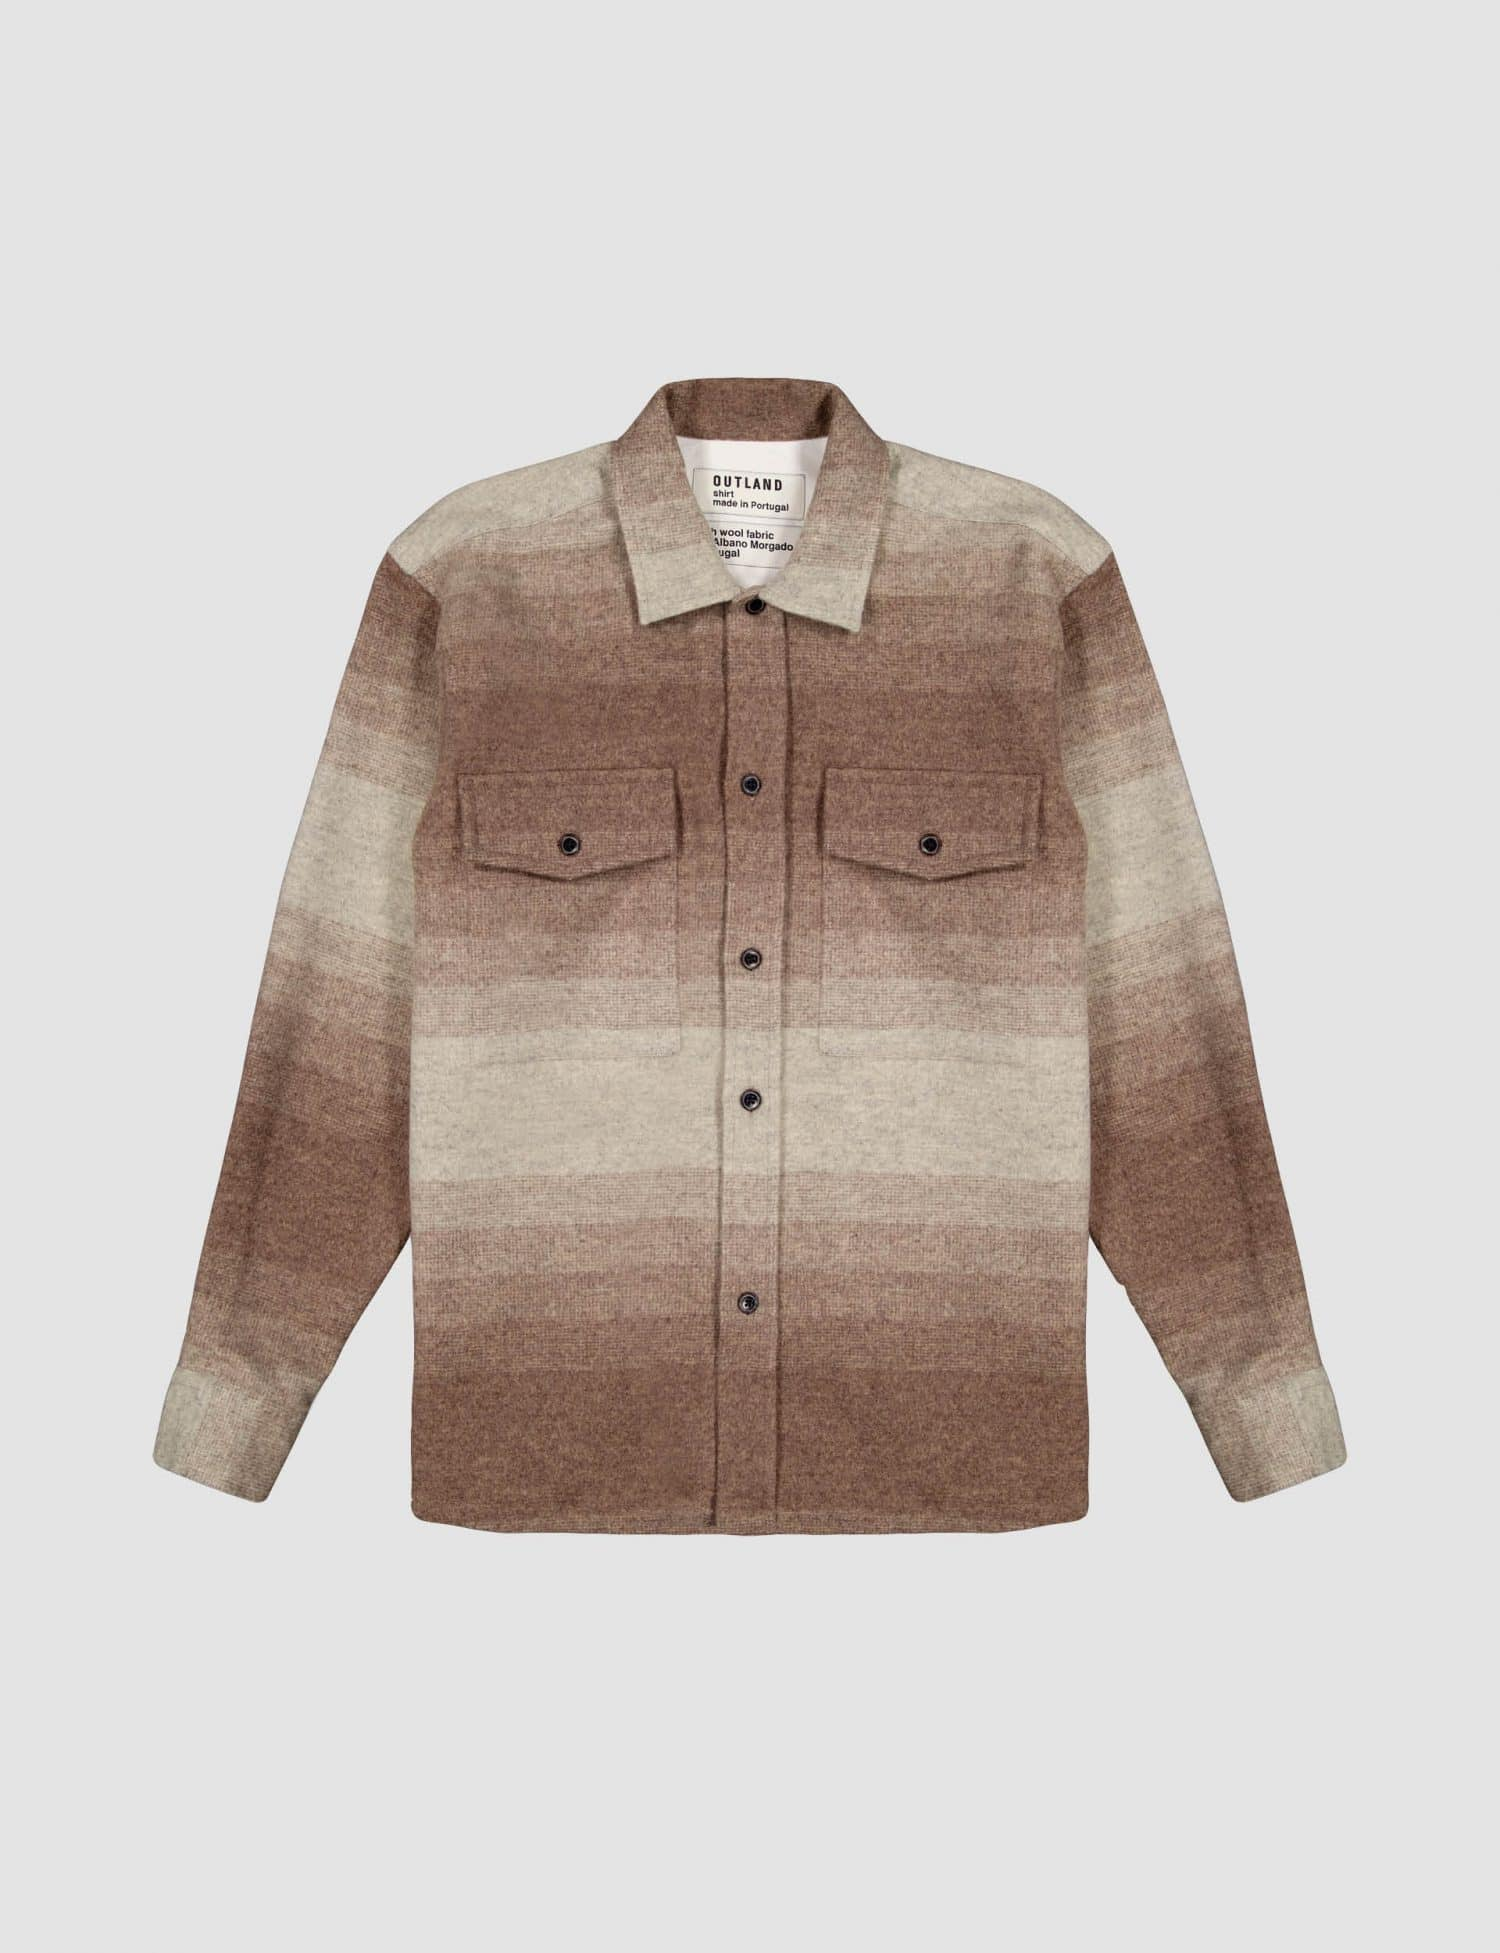 Outland - Army wool - Brown